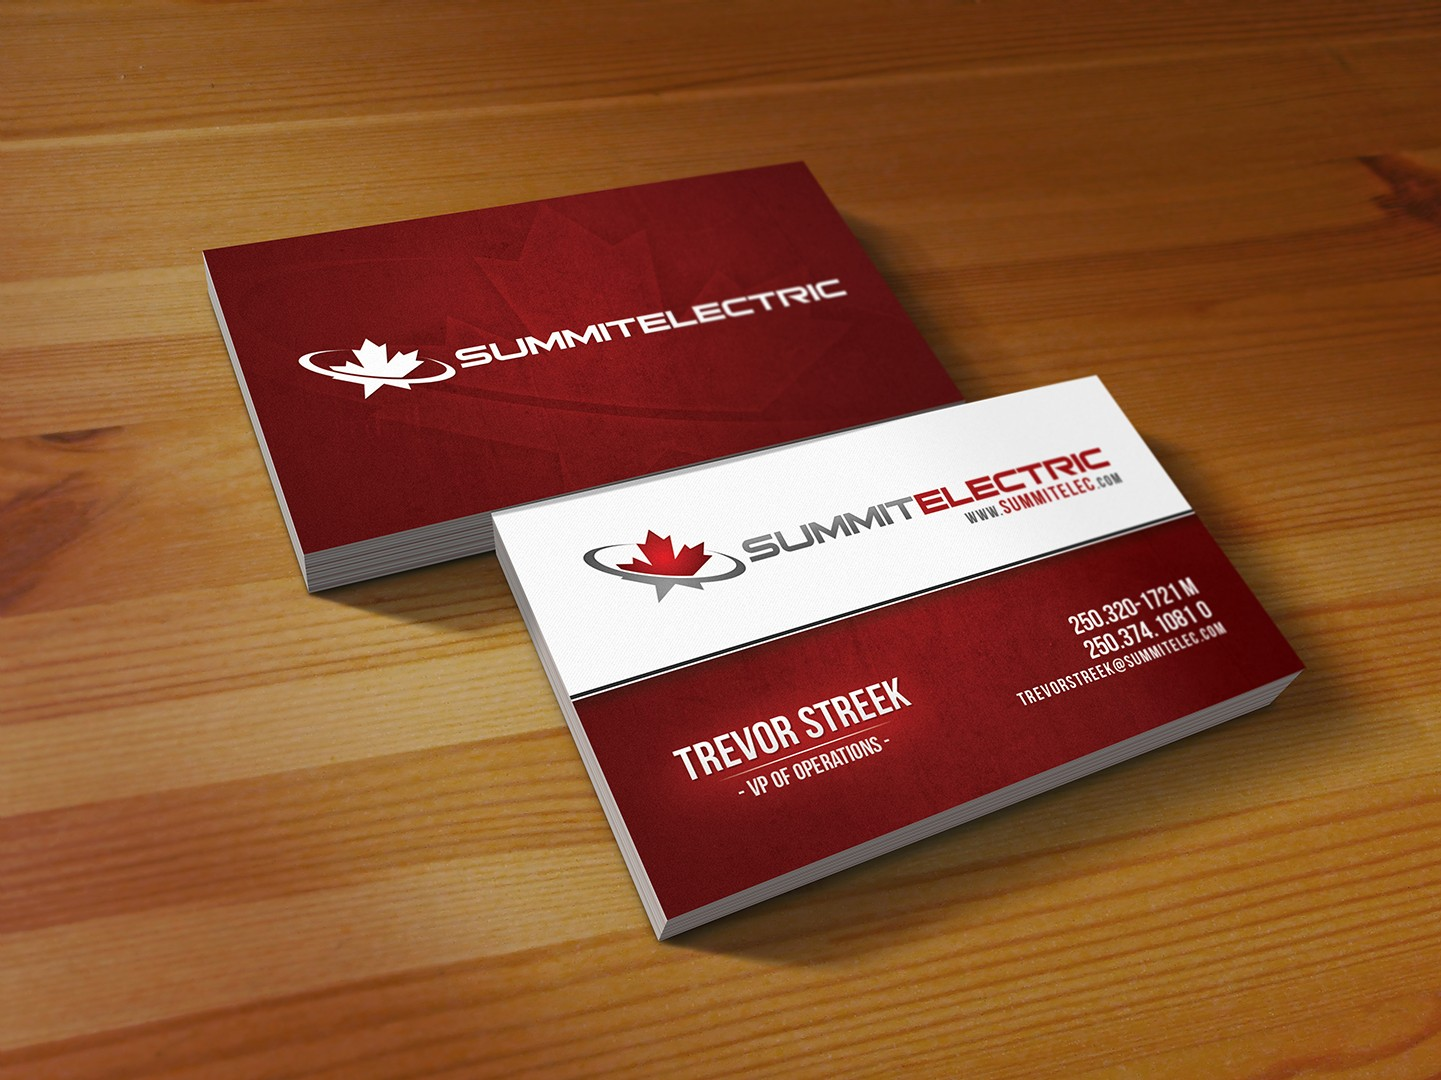 I will design professional business card for $10 - ListingDock